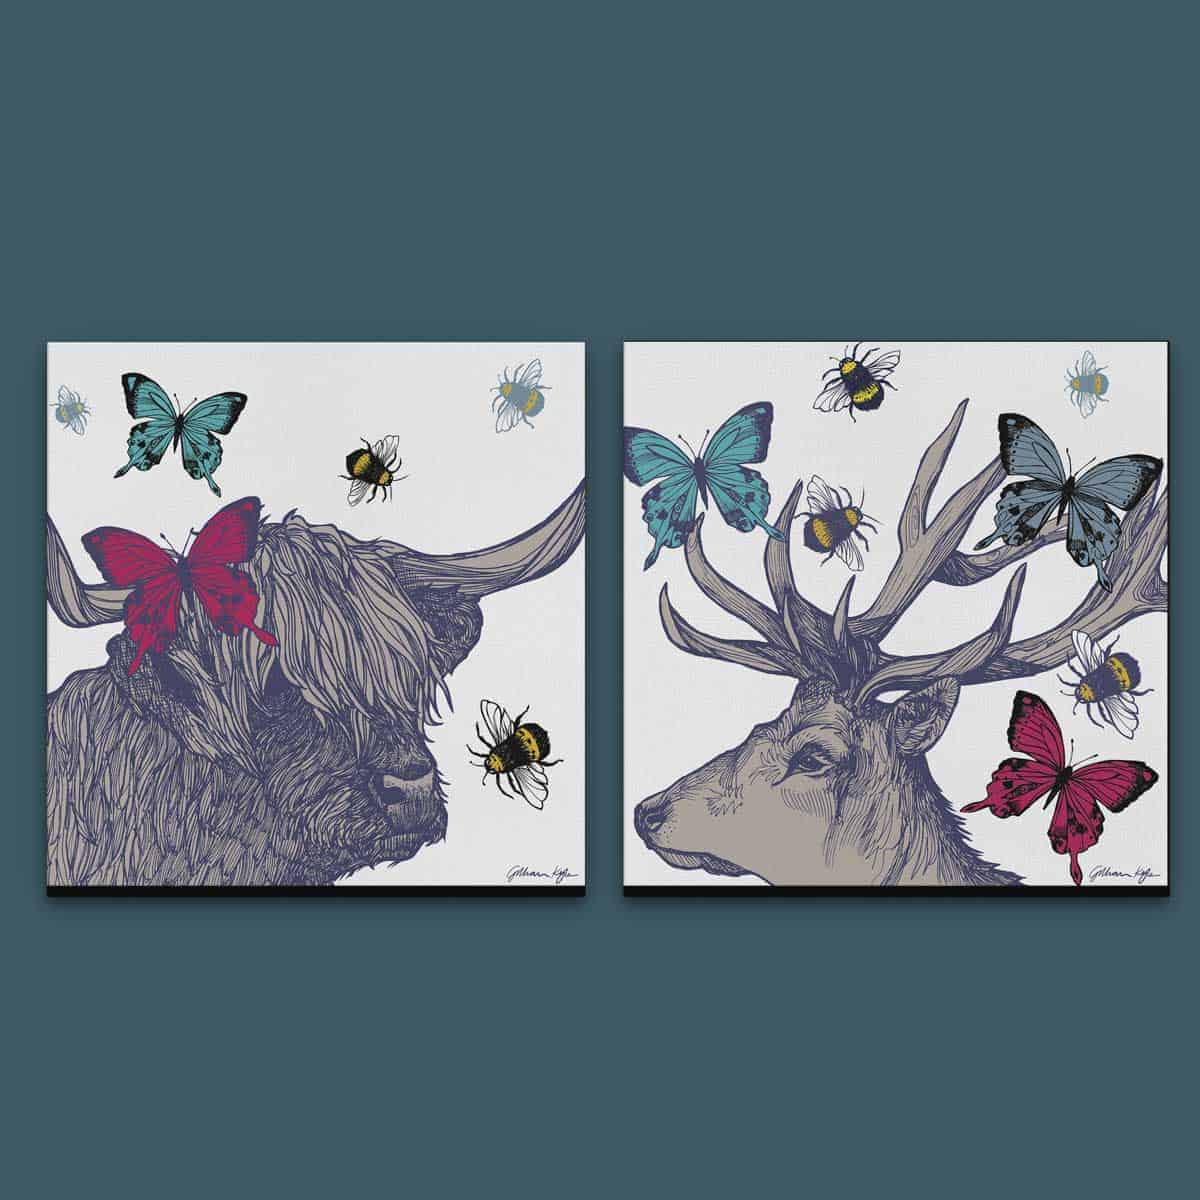 wall art canvas prints with stag, highland cow, butterflies and bees